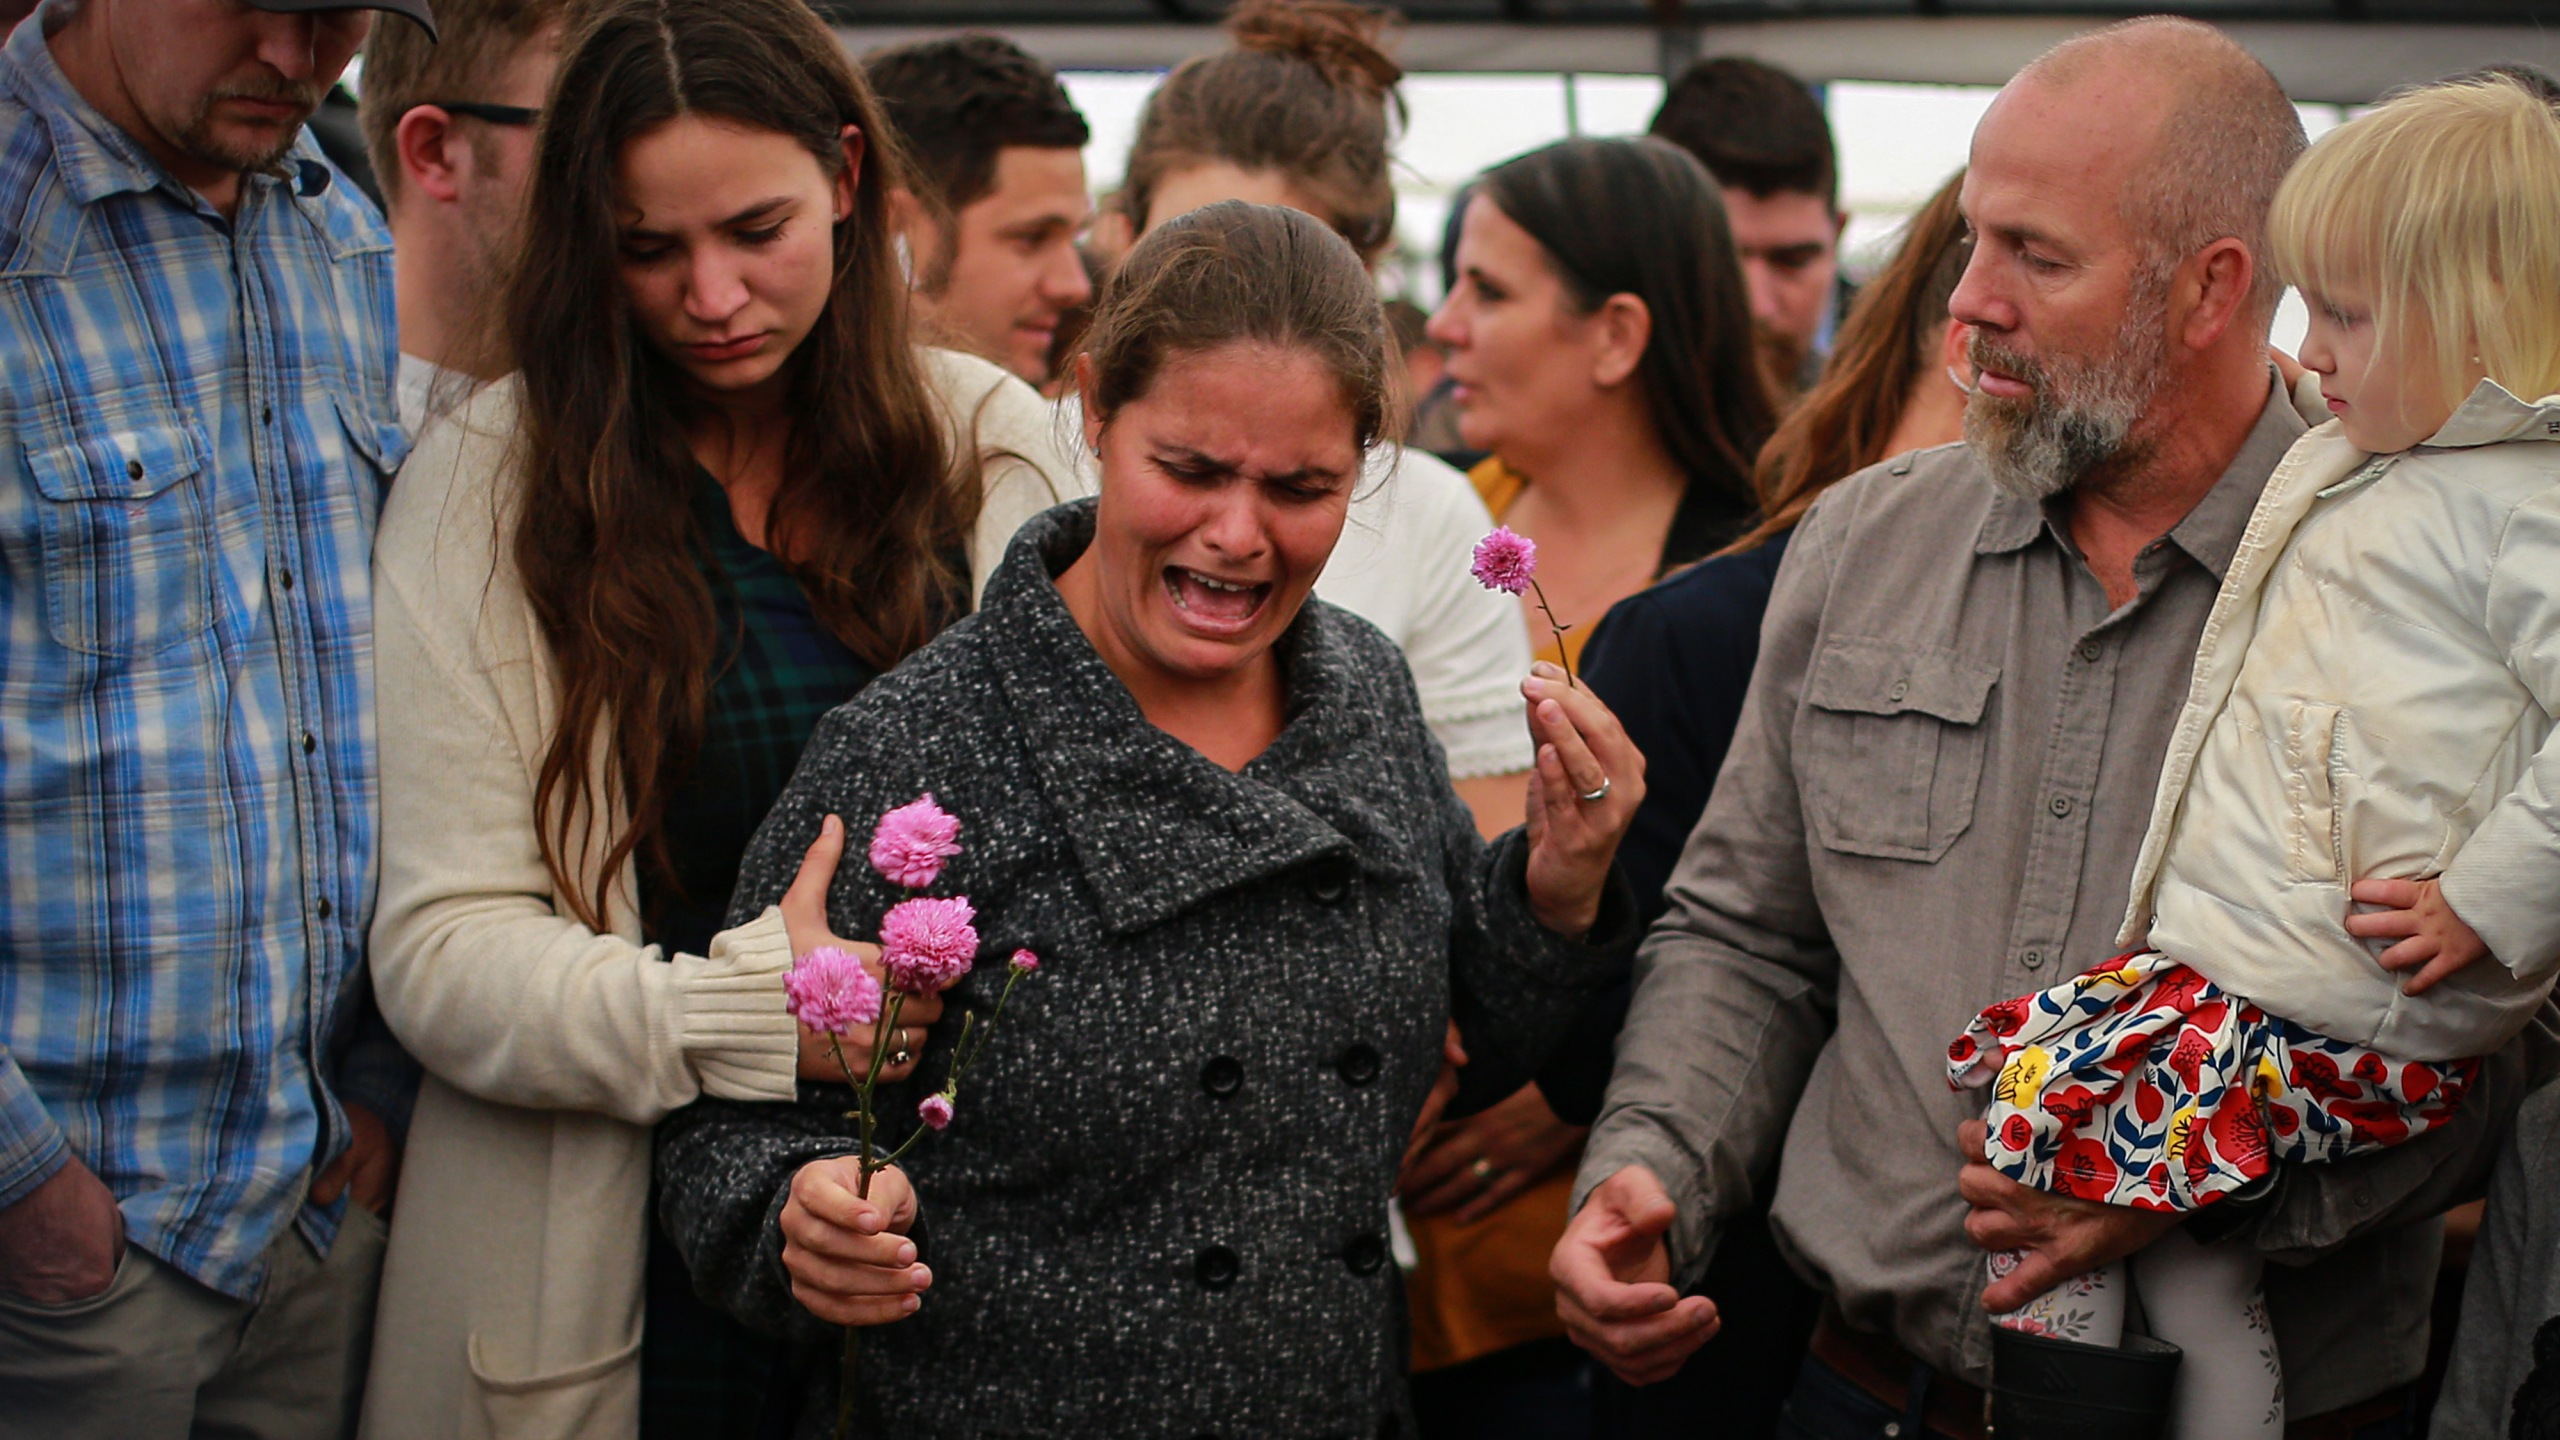 Friends and relatives of the extended Le Baron family mourn members killed in a violent attack during a funeral on Nov. 8, 2019, in Le Barón, Mexico. (Credit: Manuel Velasquez/Getty Images)